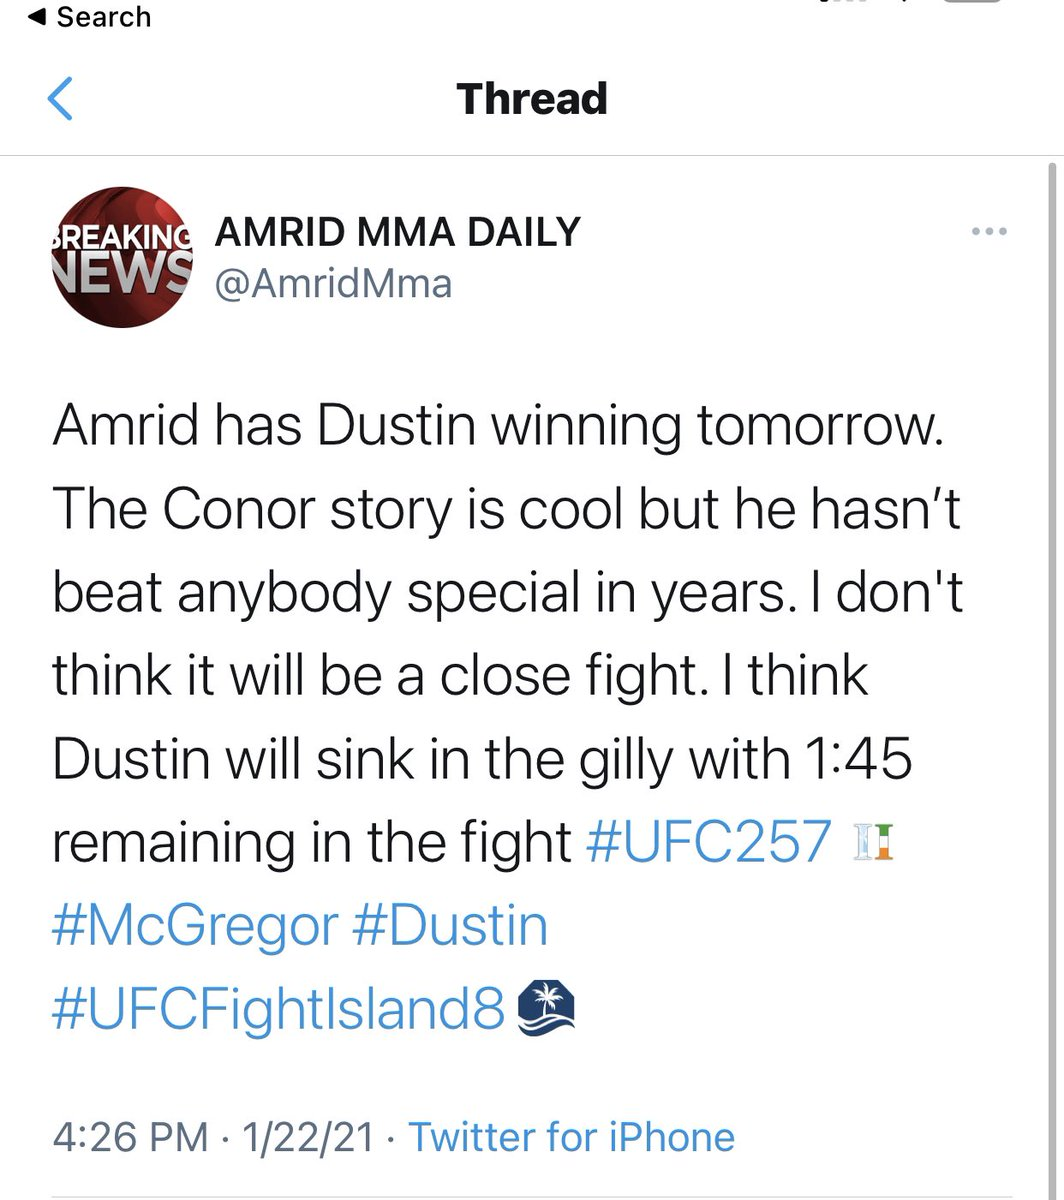 Amrid gets it right again.  We are undefeated in predictions.  Follow us for more mma news and predictions.  #UFC257 #mma #MMATwitter #McGregorPoirier #McGregorPoirier2 #UFCFightIsland